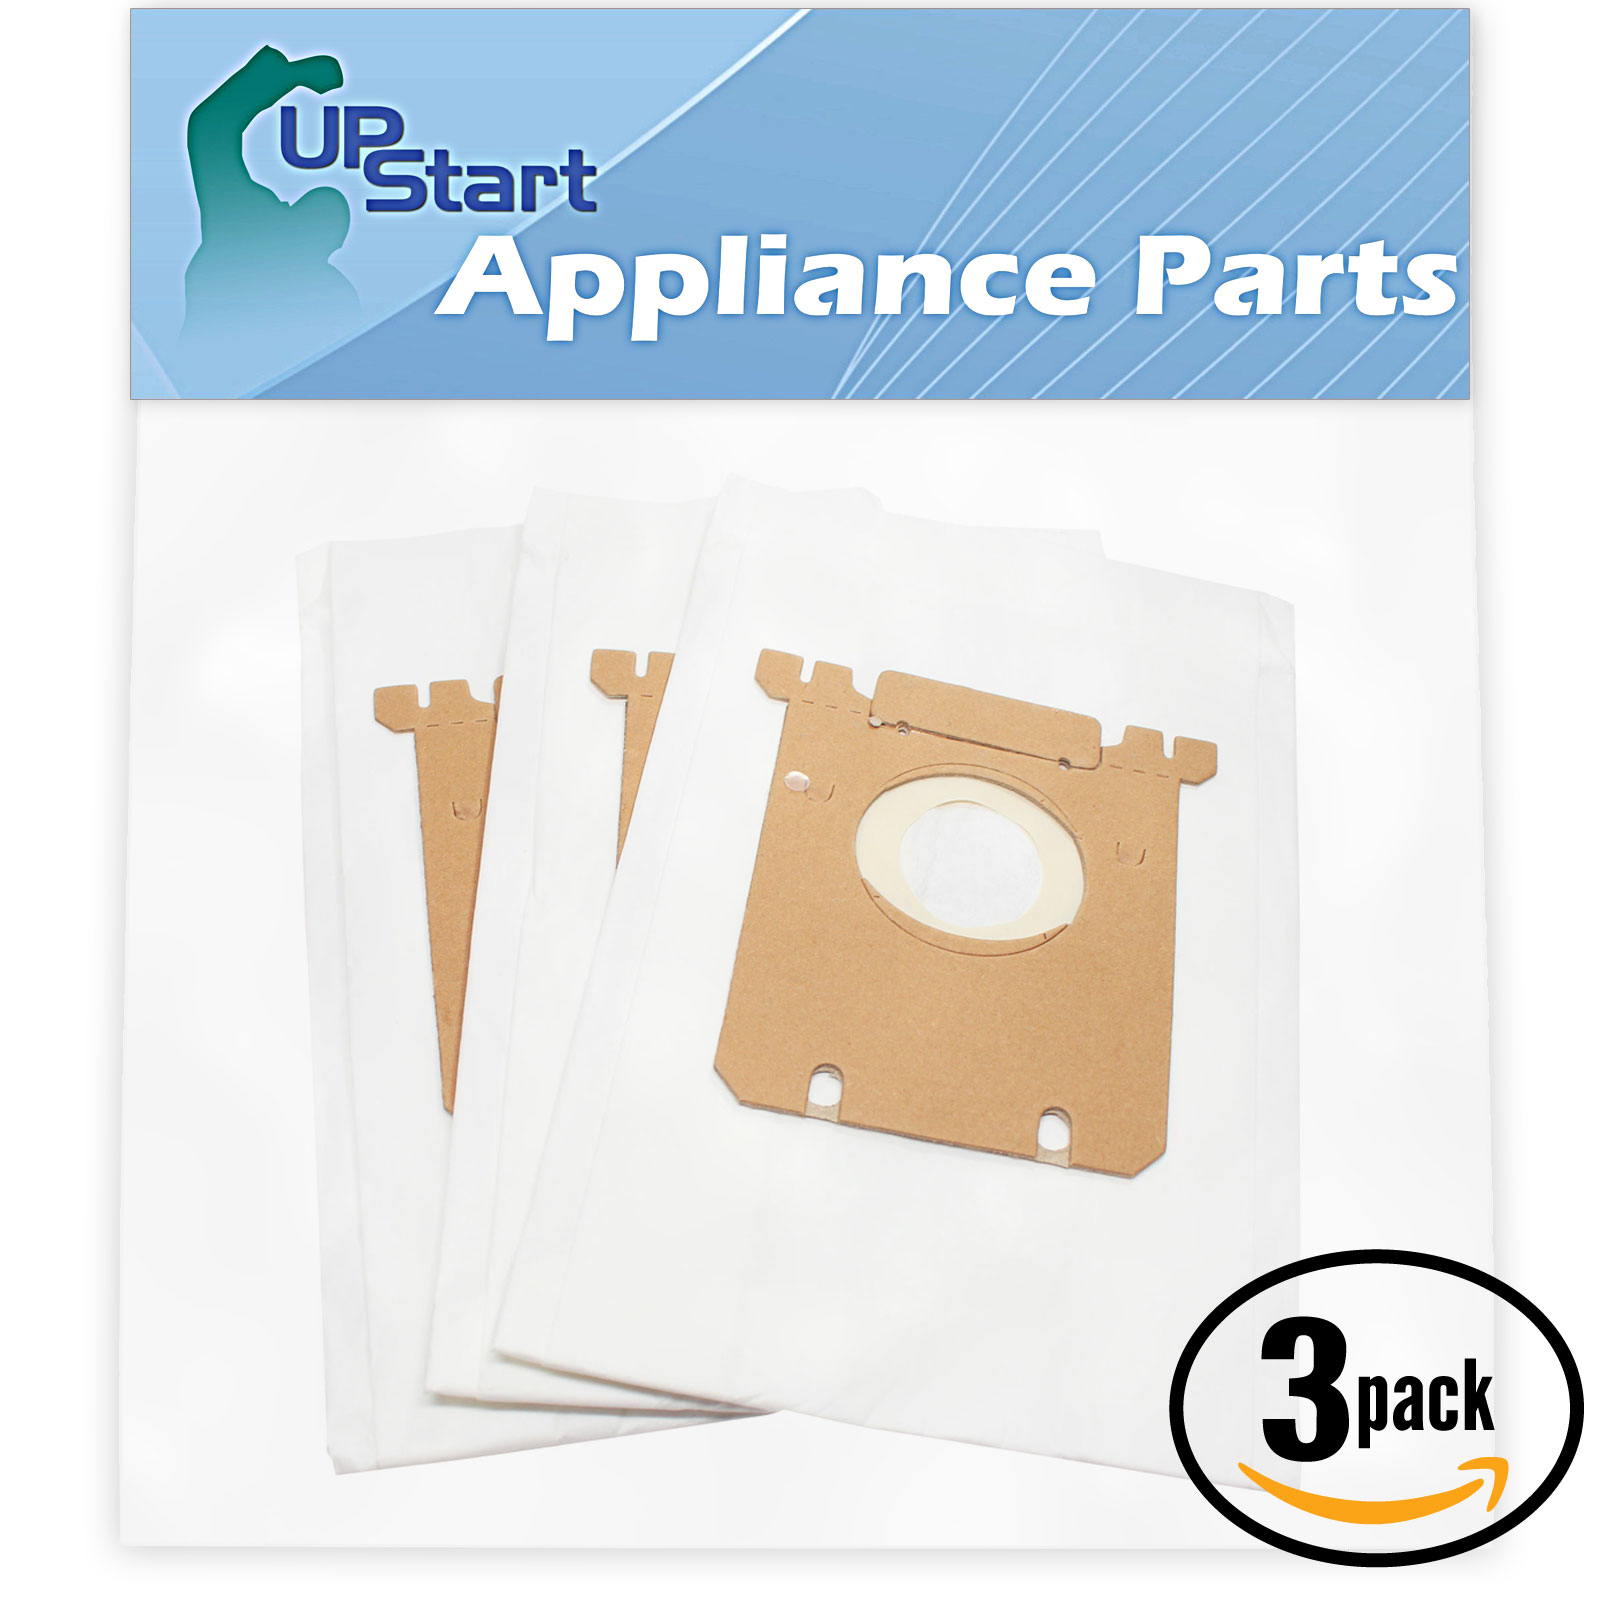 9 Replacement Sanitaire SP6952 Style S Vacuum Bags - Compatible Sanitaire S-Bag Vacuum Bags (3-Pack - 3 Vacuum Bags per Pack) - image 4 of 4